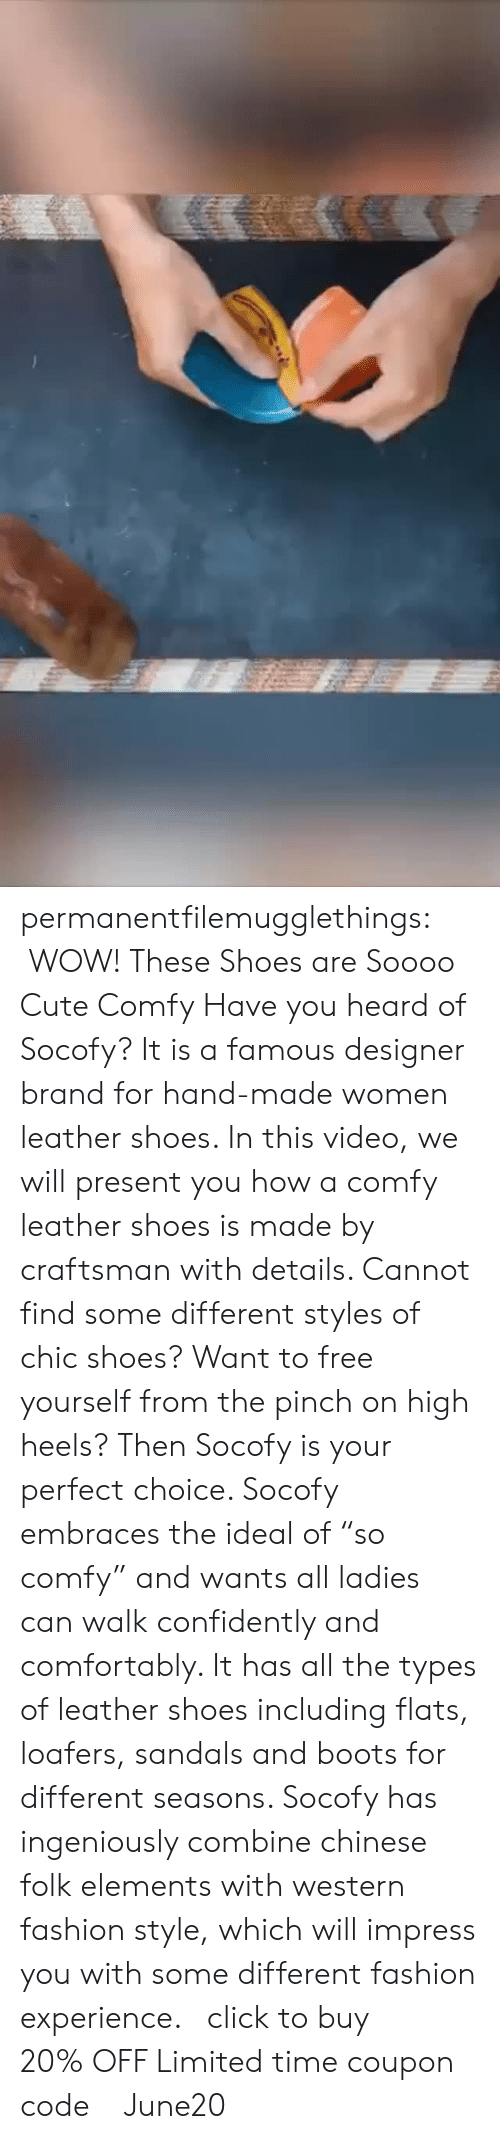 "Soooo: permanentfilemugglethings:   WOW! These Shoes are Soooo Cute  Comfy  Have you heard of Socofy? It is a famous designer brand for hand-made women leather shoes. In this video, we will present you how a comfy leather shoes is made by craftsman with details. Cannot find some different styles of chic shoes? Want to free yourself from the pinch on high heels? Then Socofy is your perfect choice. Socofy embraces the ideal of ""so comfy"" and wants all ladies can walk confidently and comfortably. It has all the types of leather shoes including flats, loafers, sandals and boots for different seasons. Socofy has ingeniously combine chinese folk elements with western fashion style, which will impress you with some different fashion experience.   click to buy!!! 20% OFF Limited time coupon code : June20"